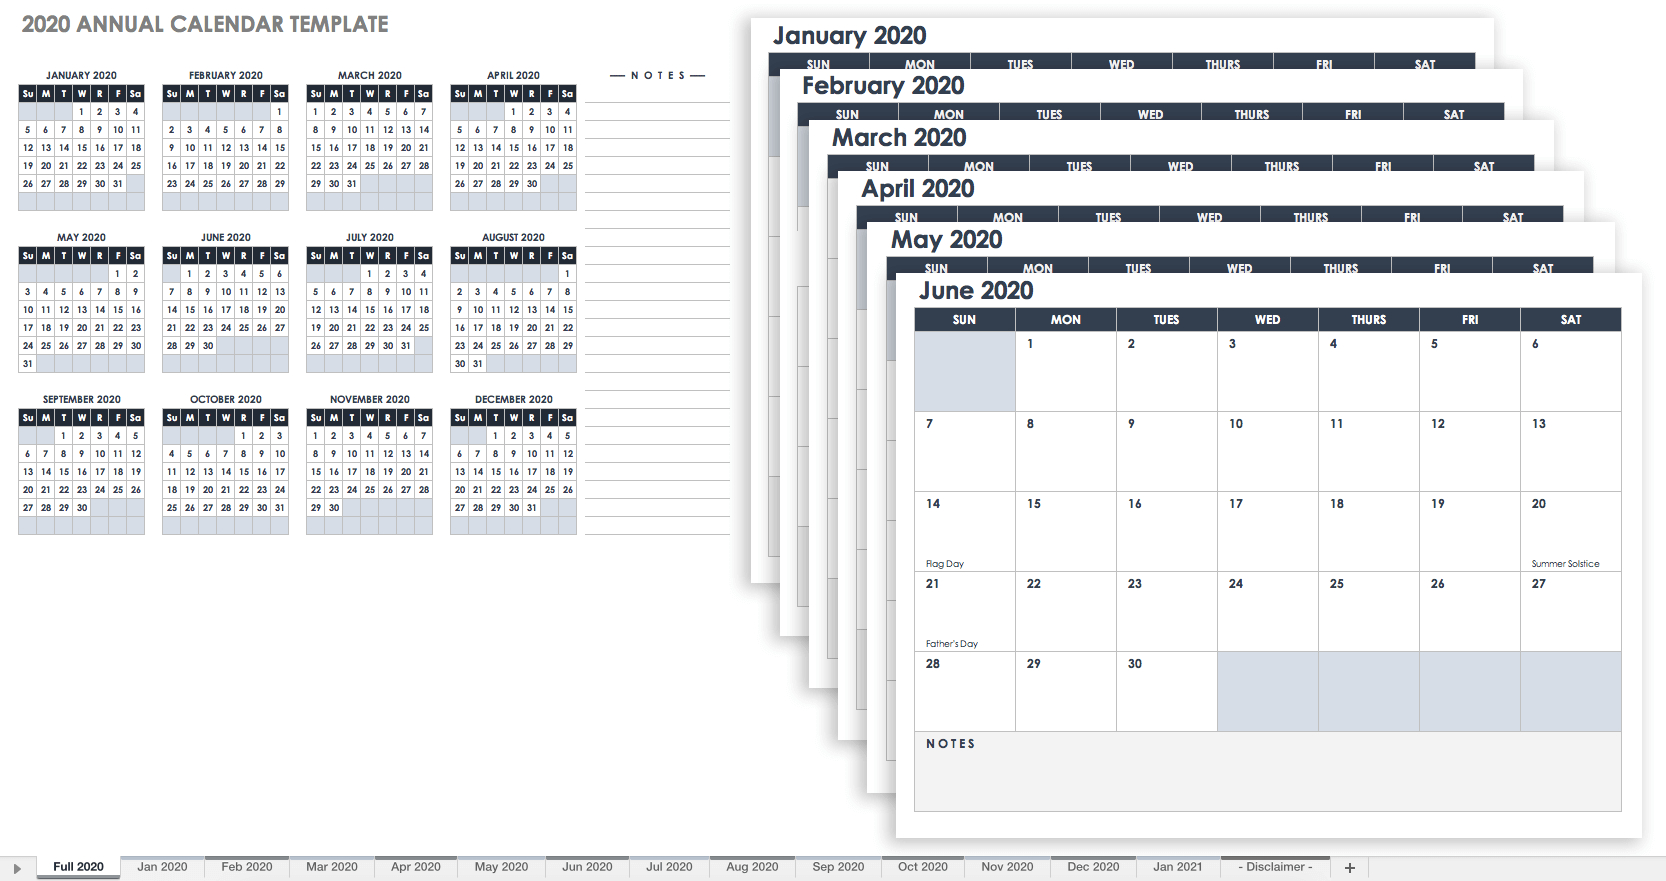 Free Excel Calendar Templates throughout 1 Page Calendar 2019-2020 With Major Holidays